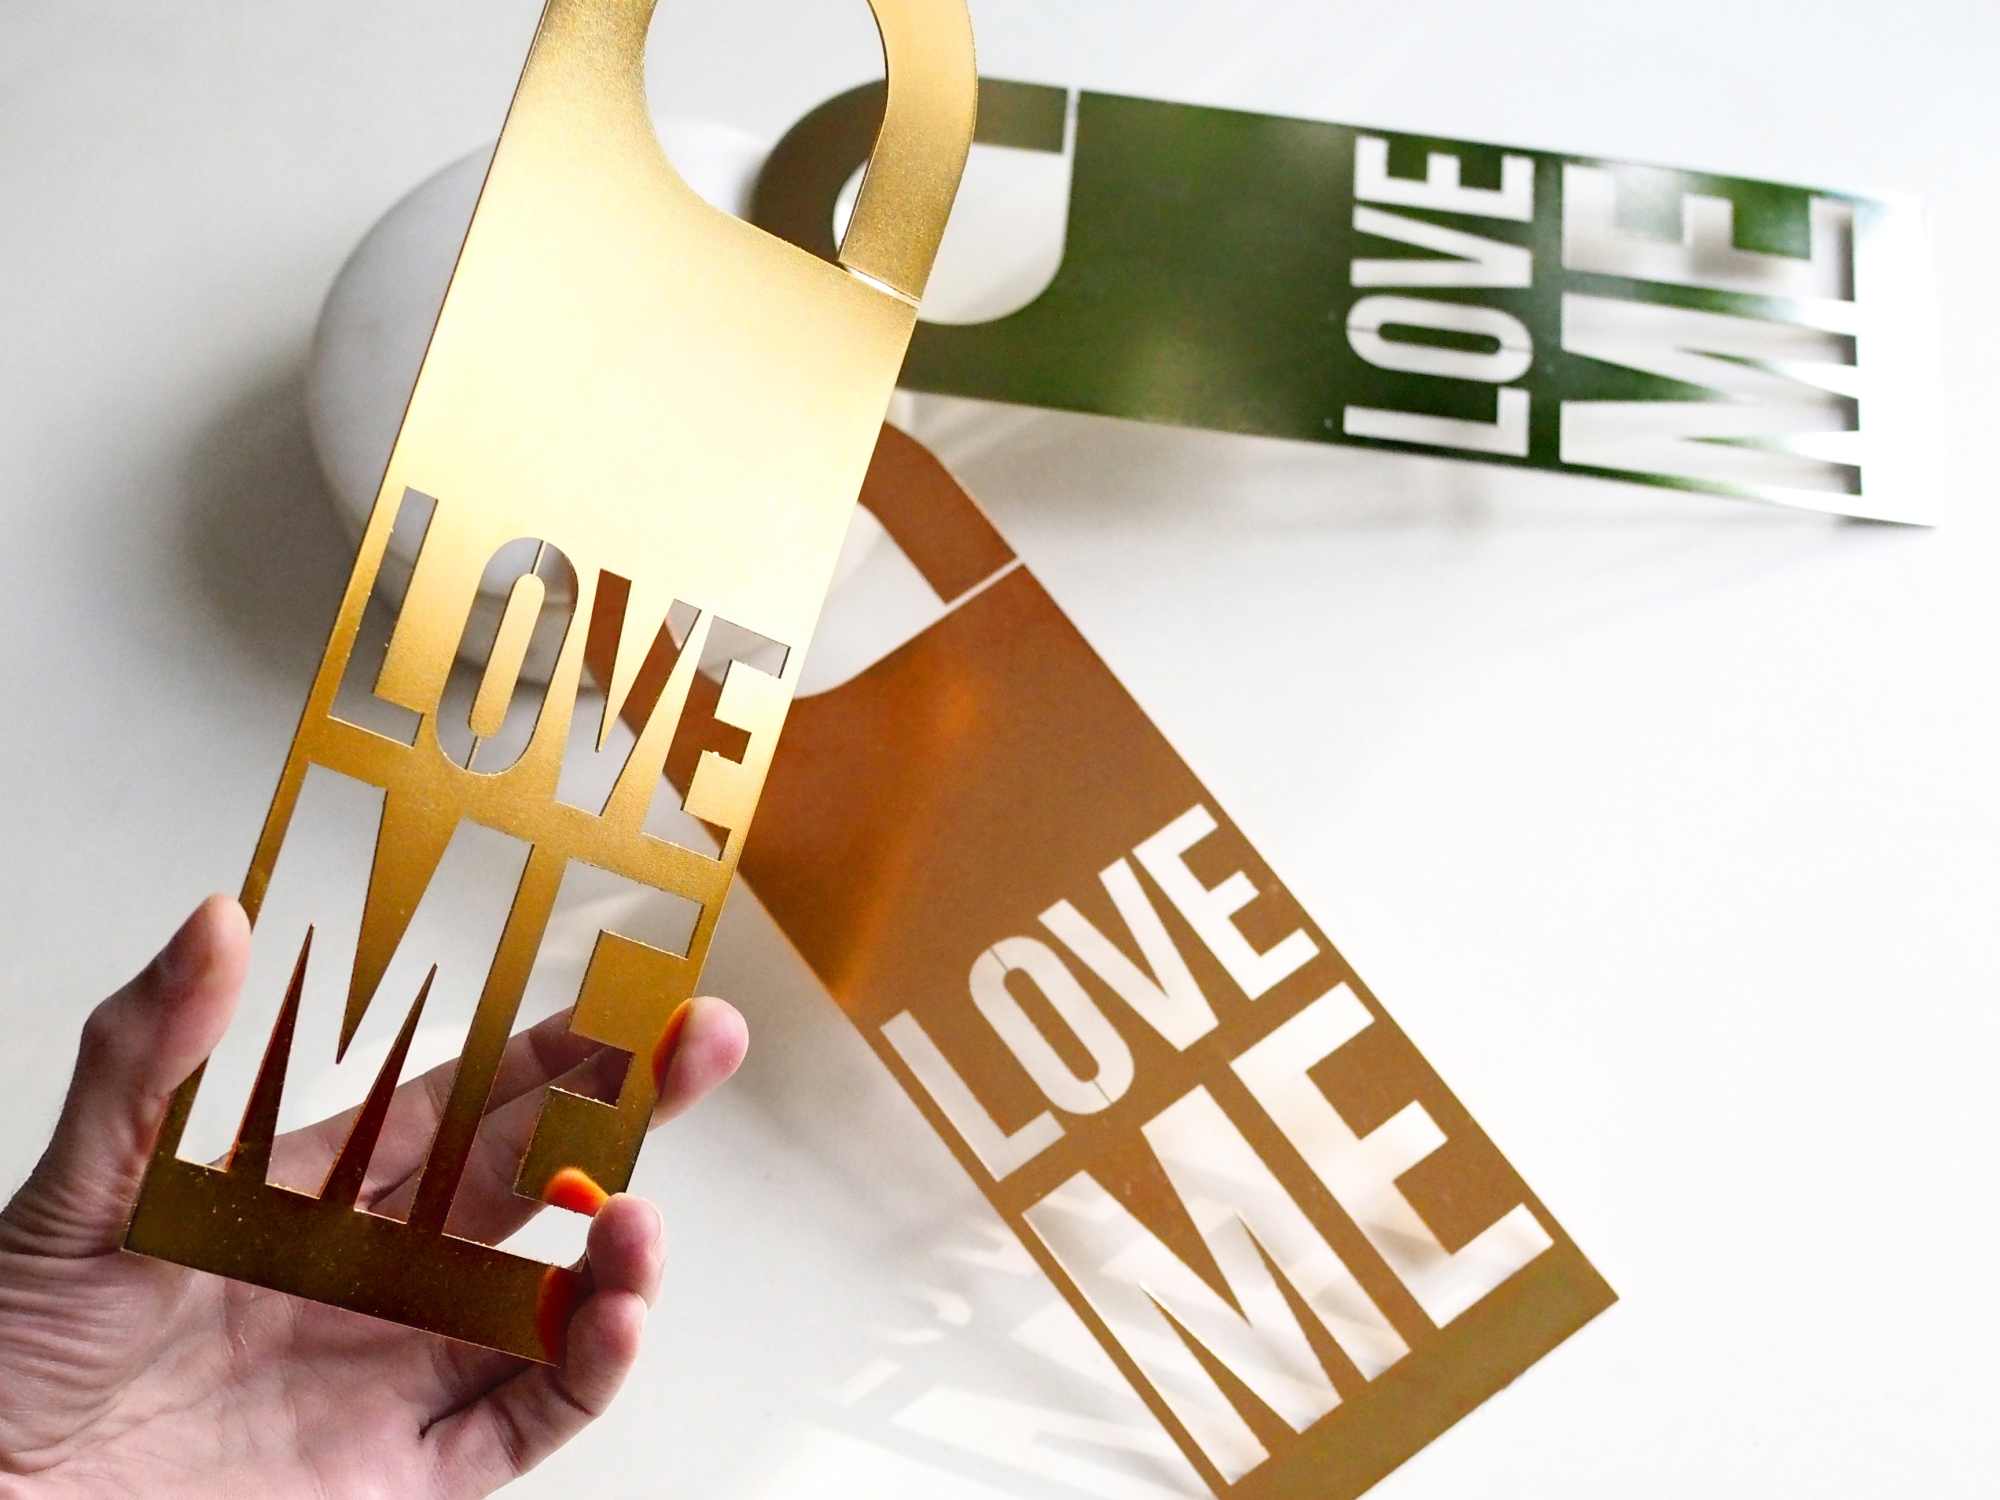 Door Hanger Love Me - Yellow, Pink and White Gold Limited Edition - Le Sonneur - 2019